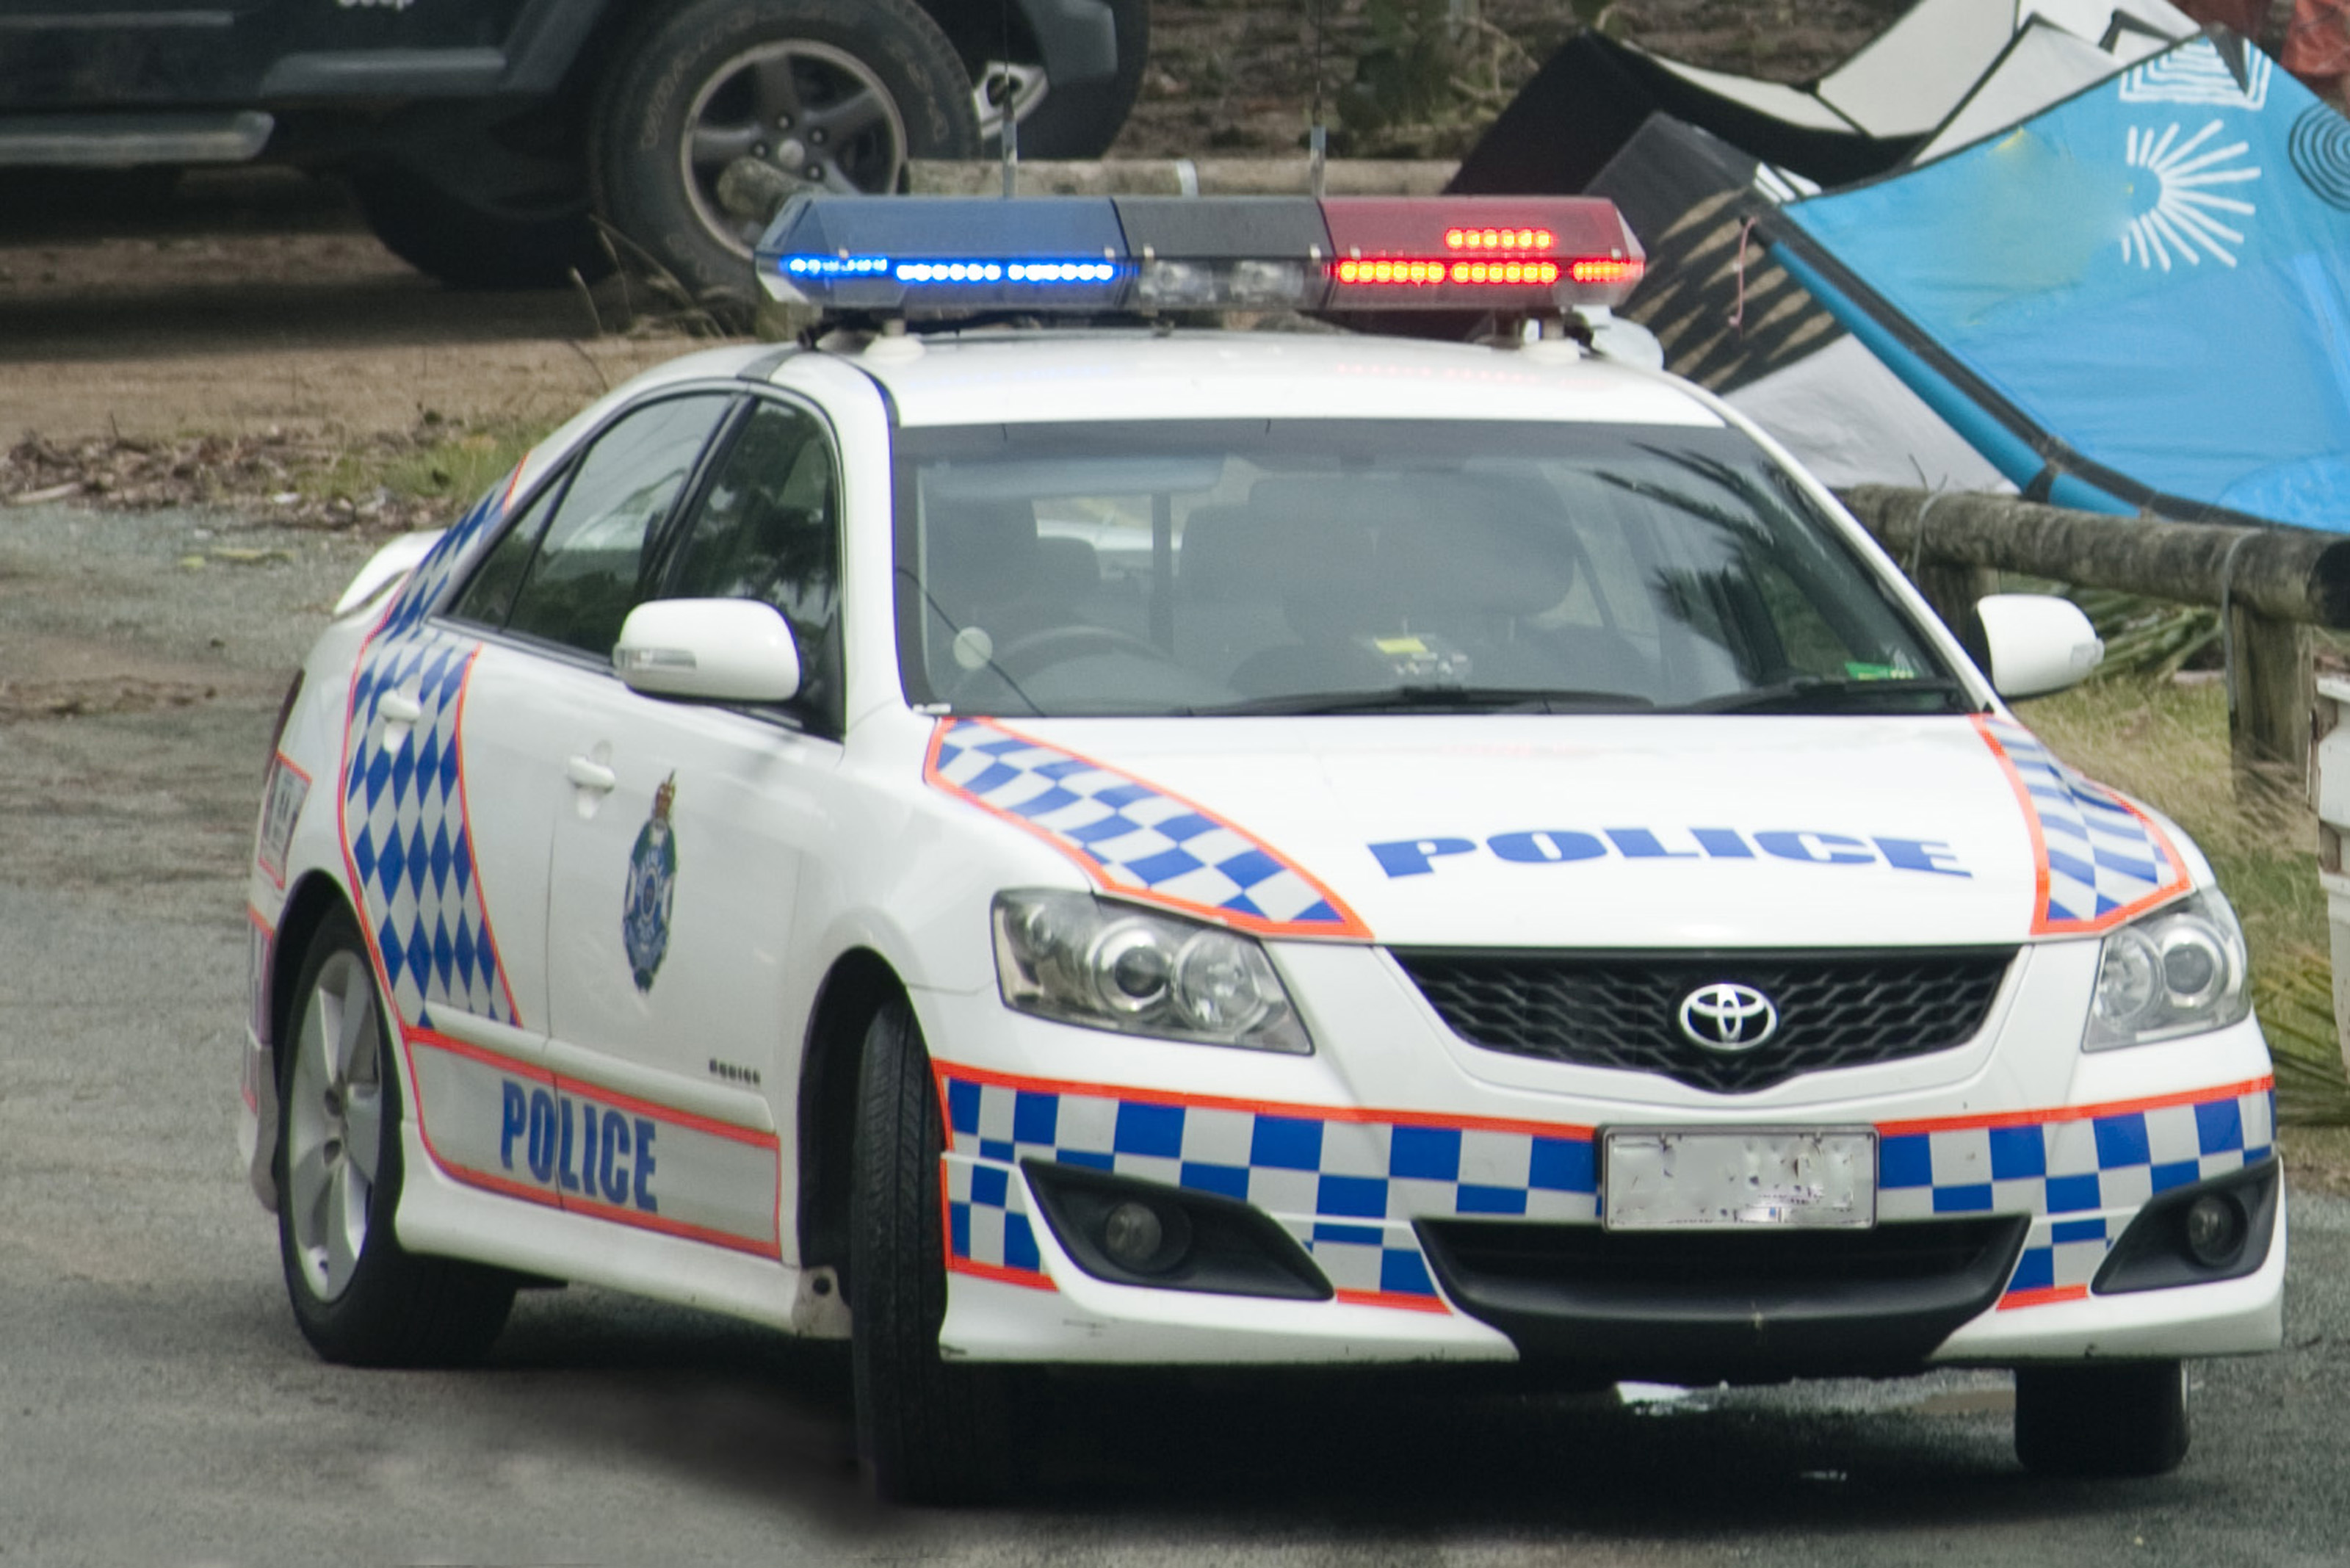 free image of police car with lights flashing